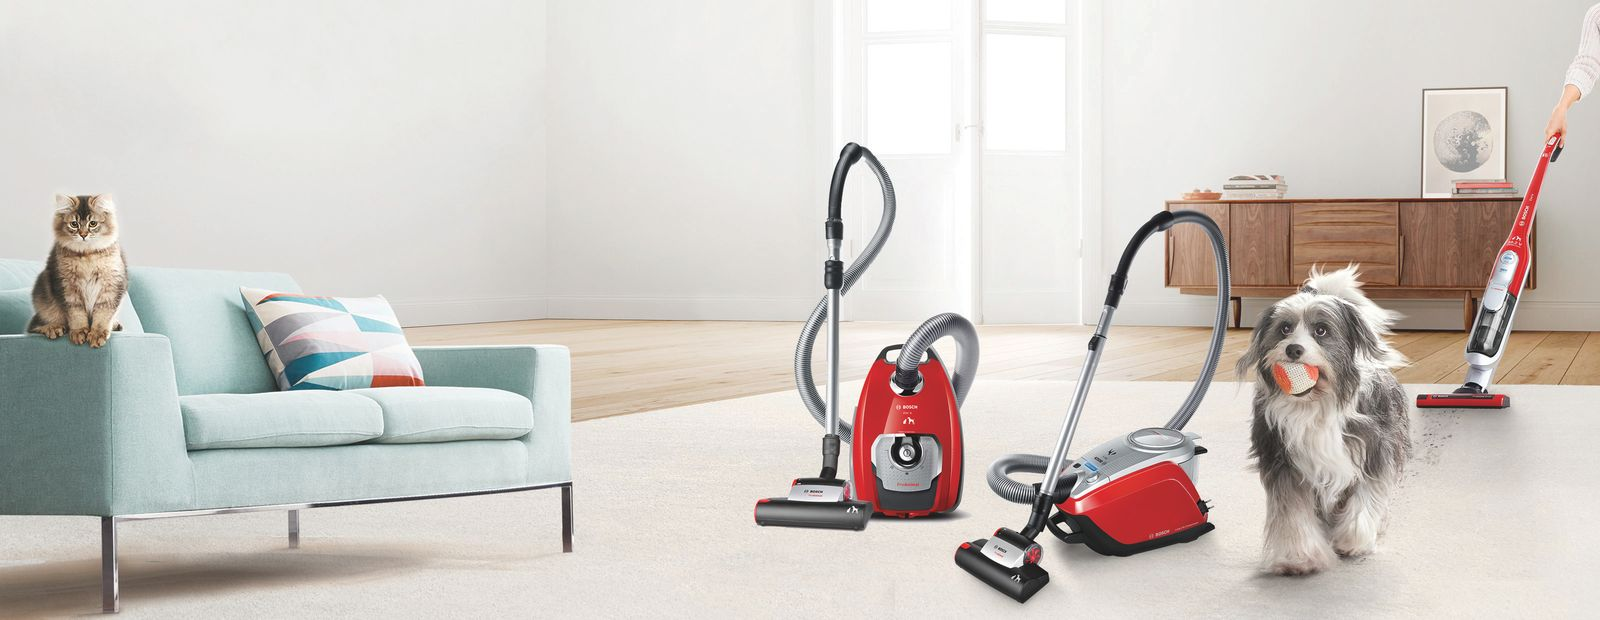 vacuuming help in sewer cleaning